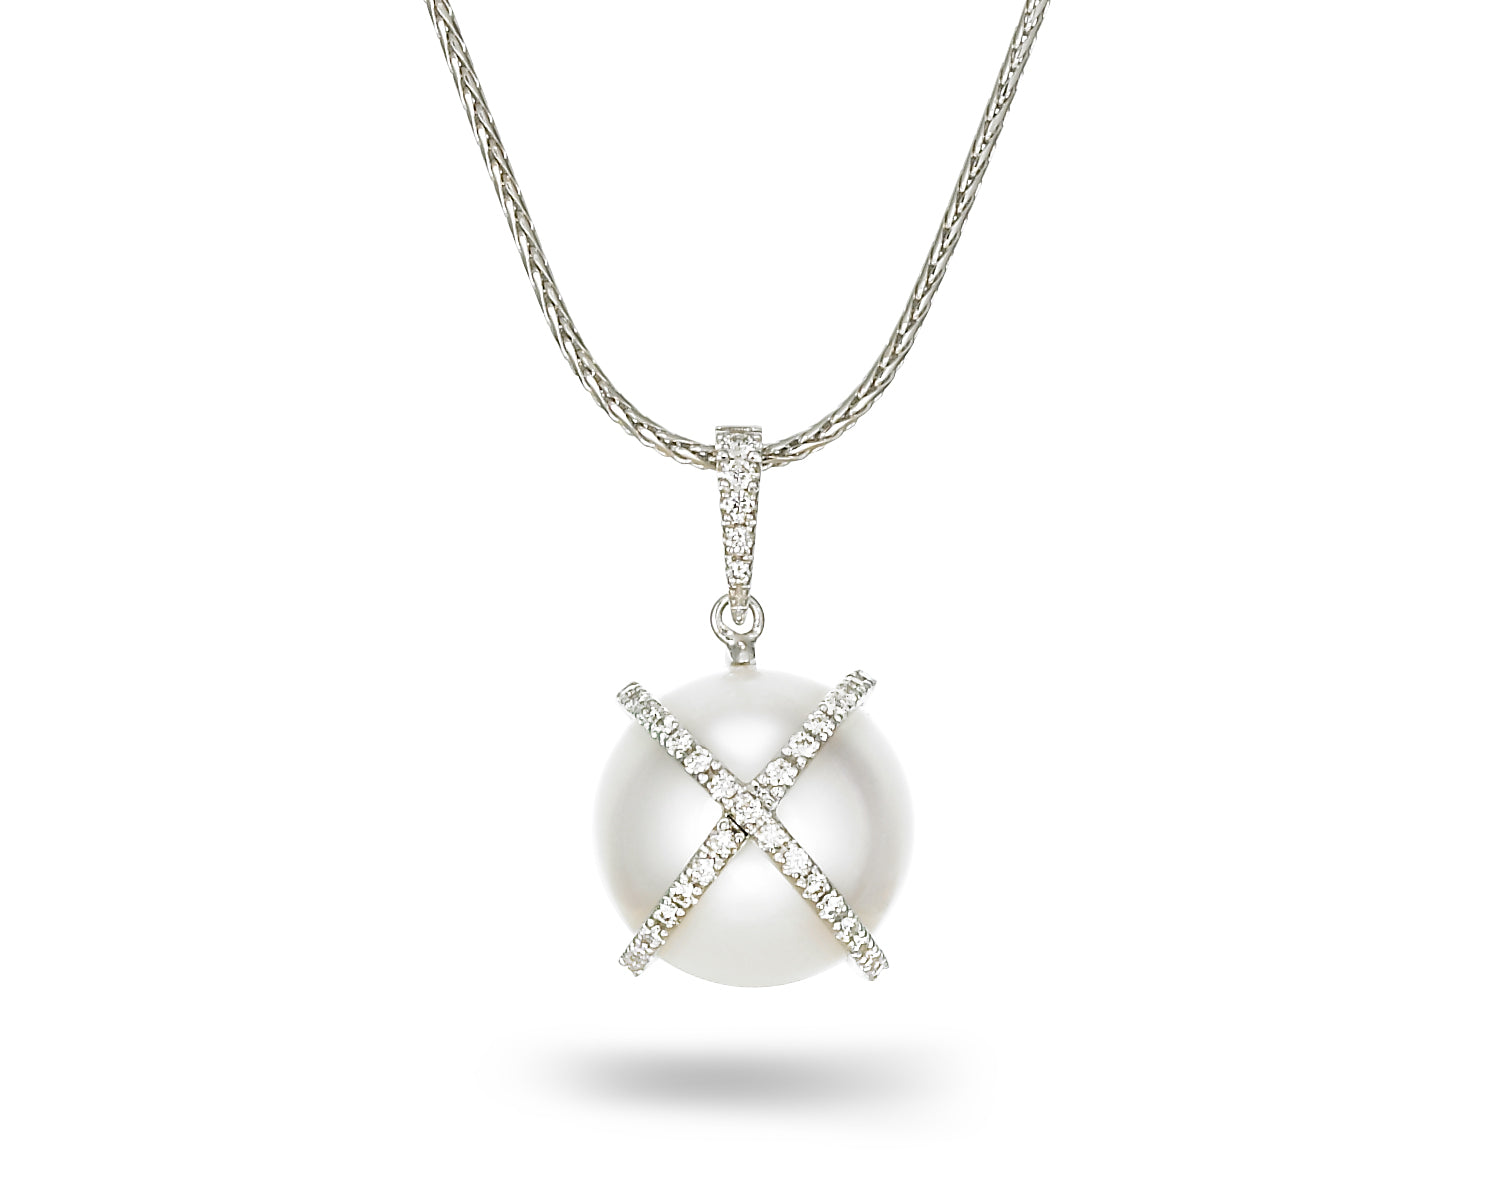 X & O's White South Sea Pearl Pendant